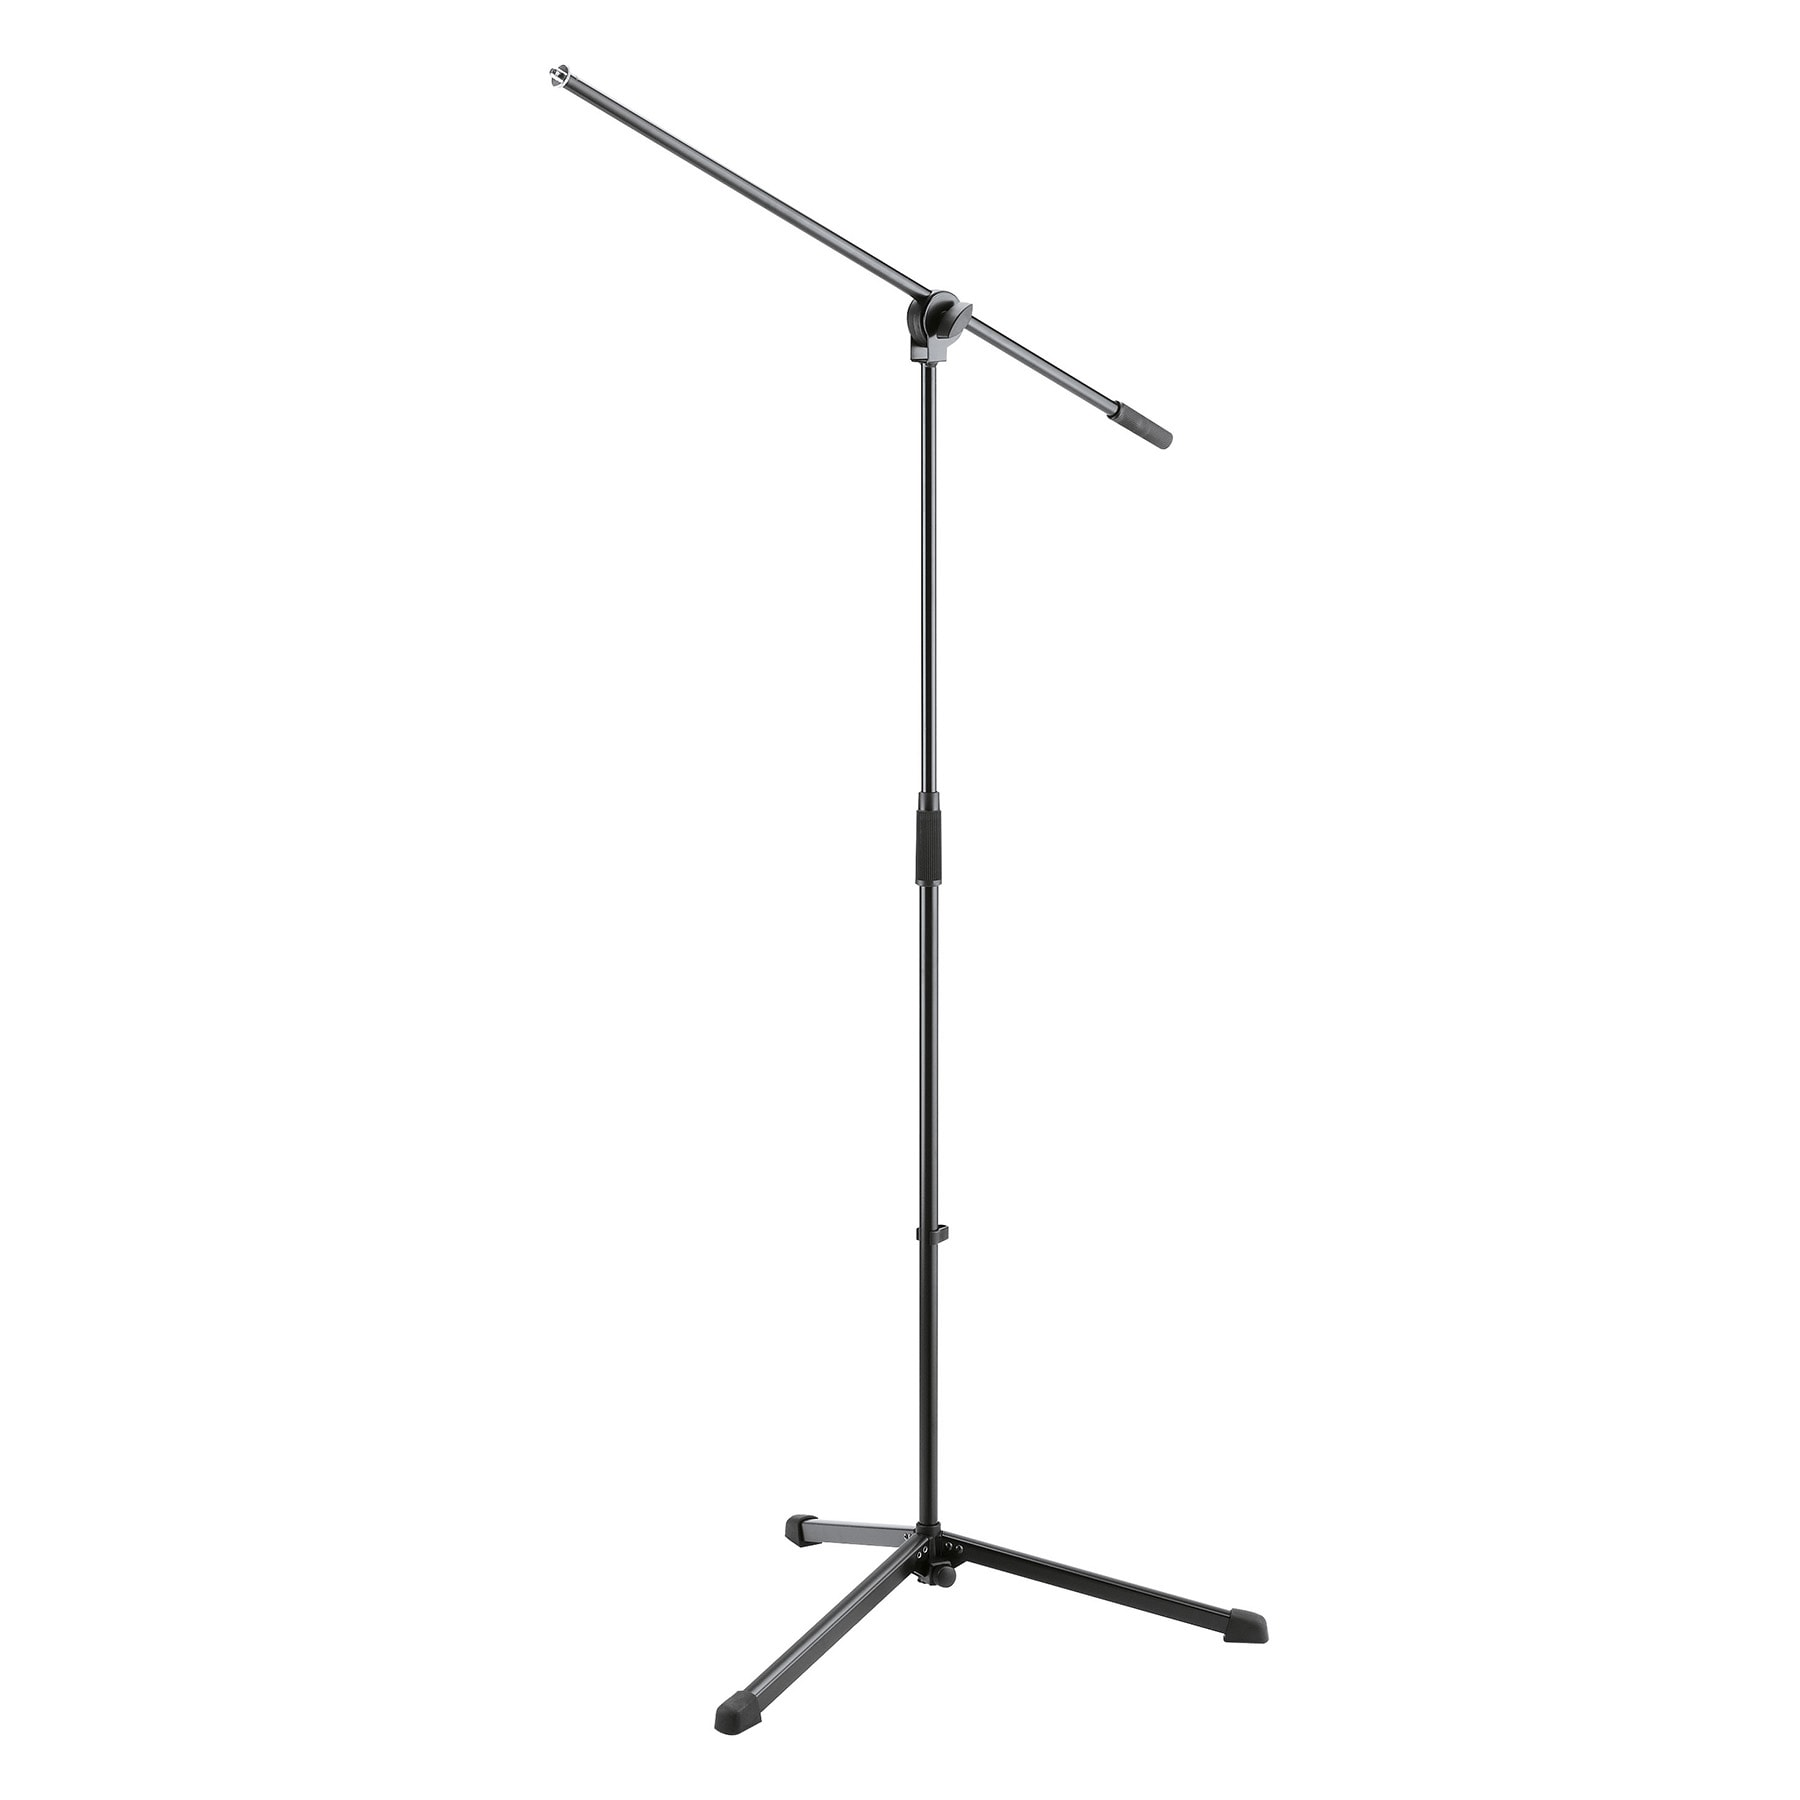 KM25400 - Microphone stand